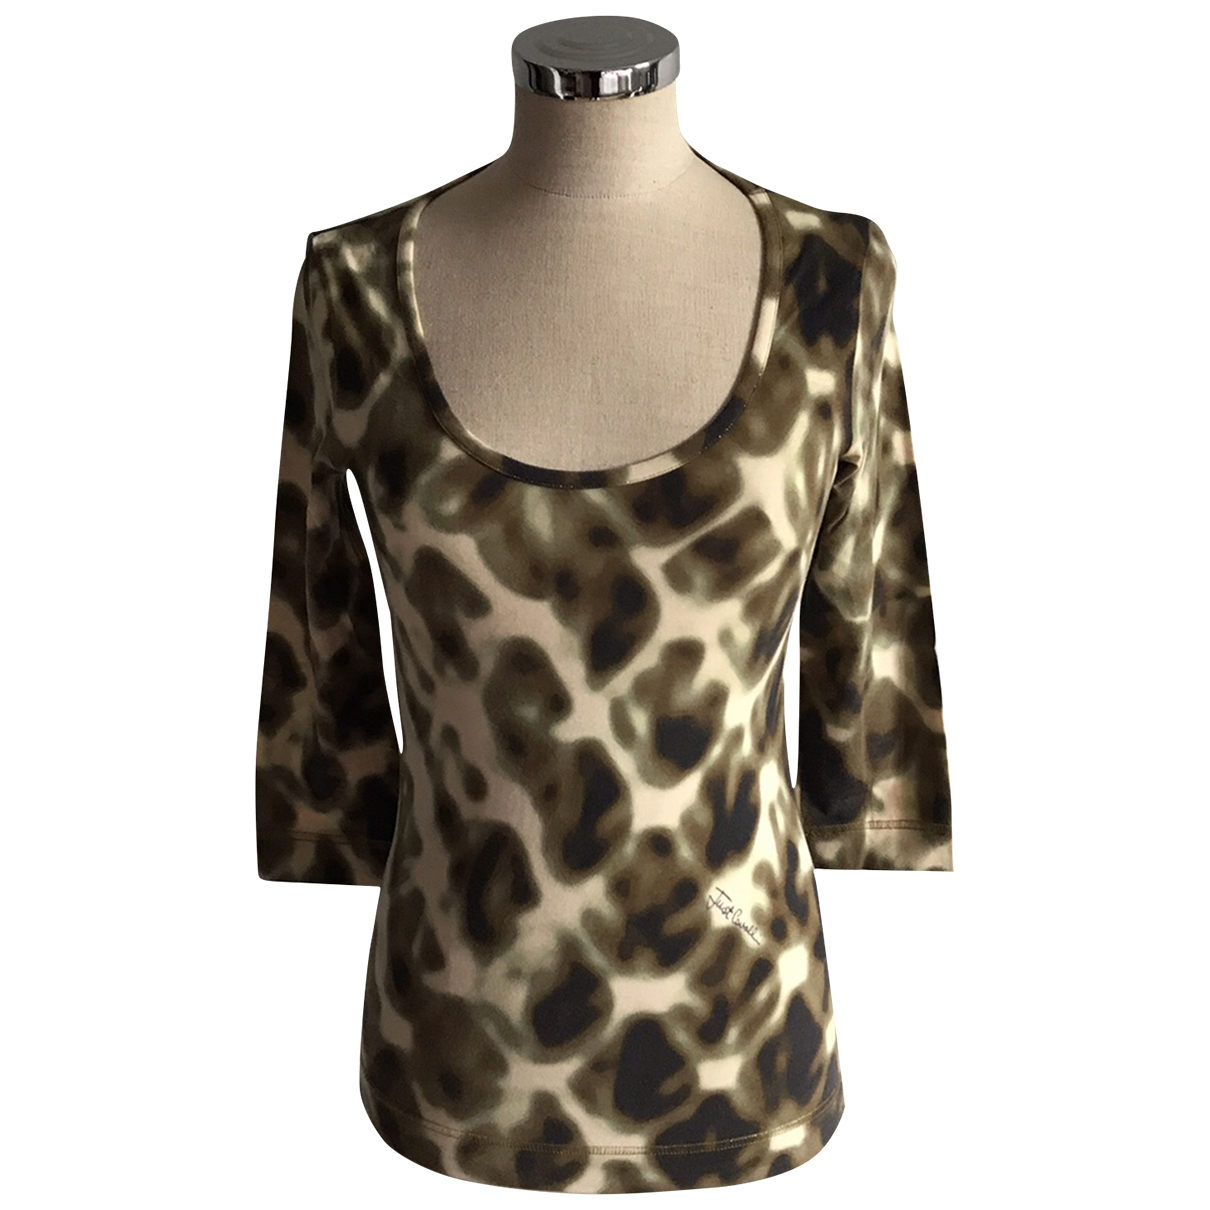 Just Cavalli \N Green Cotton  top for Women S International